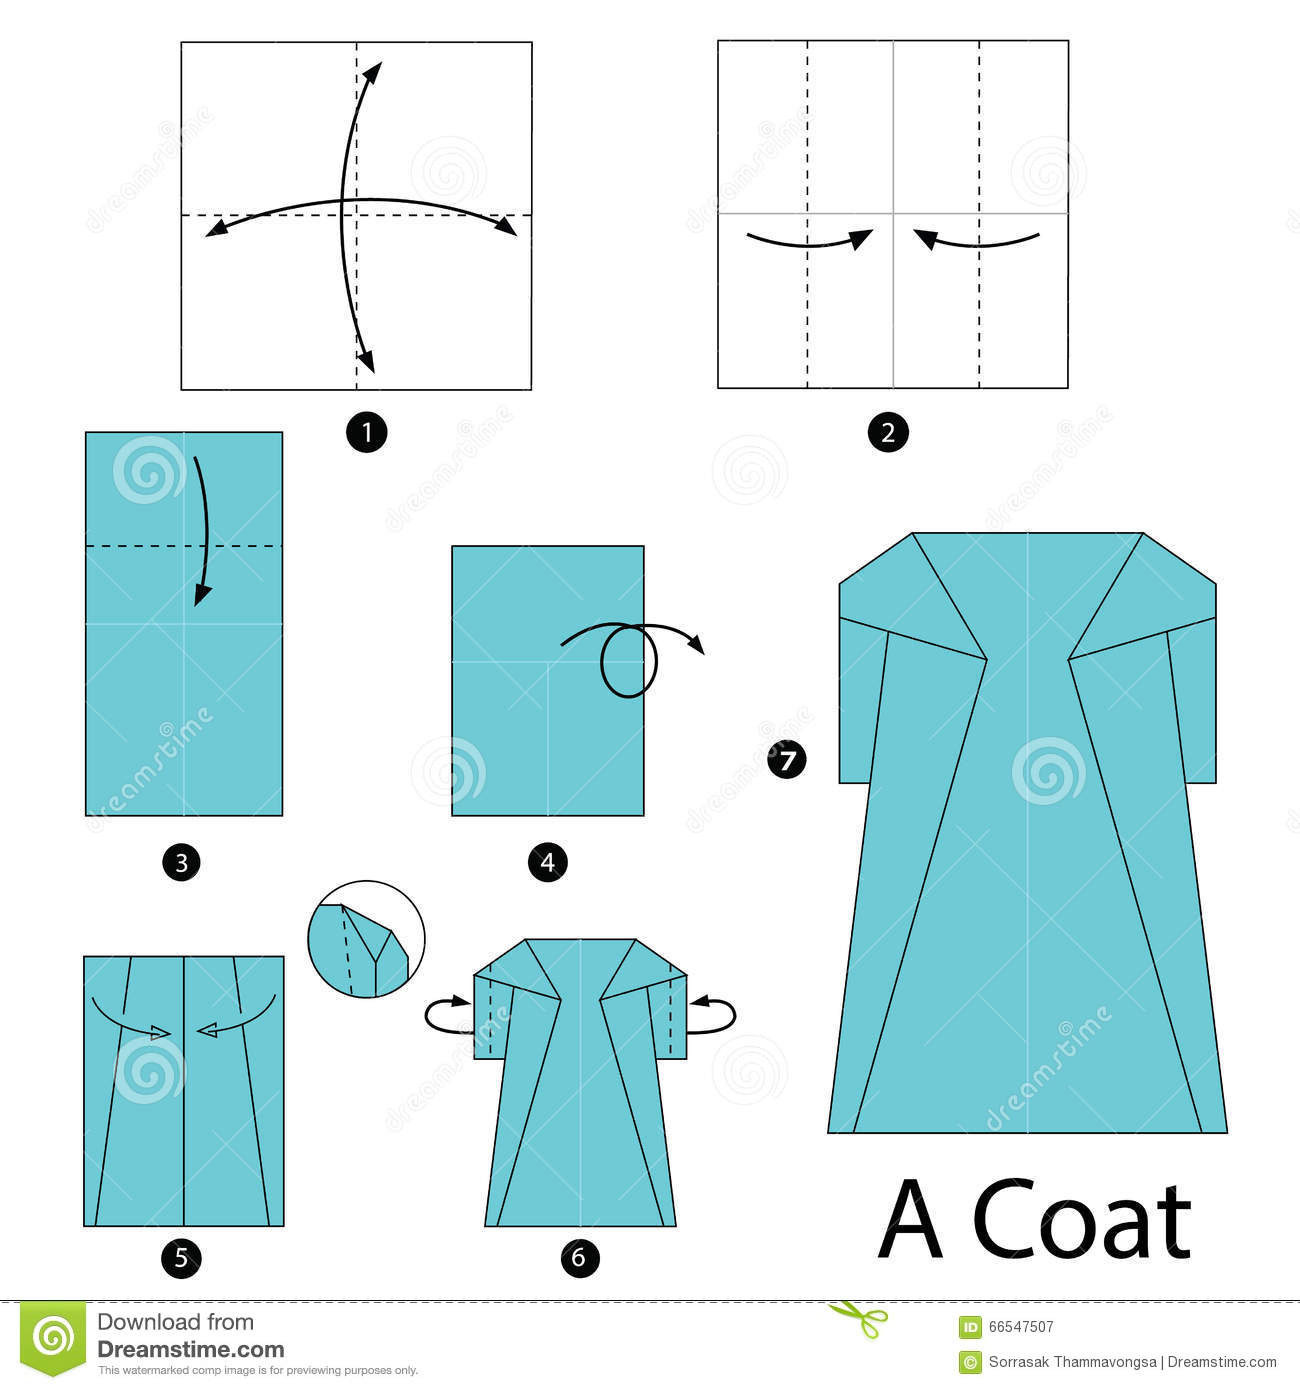 instructions on how to make